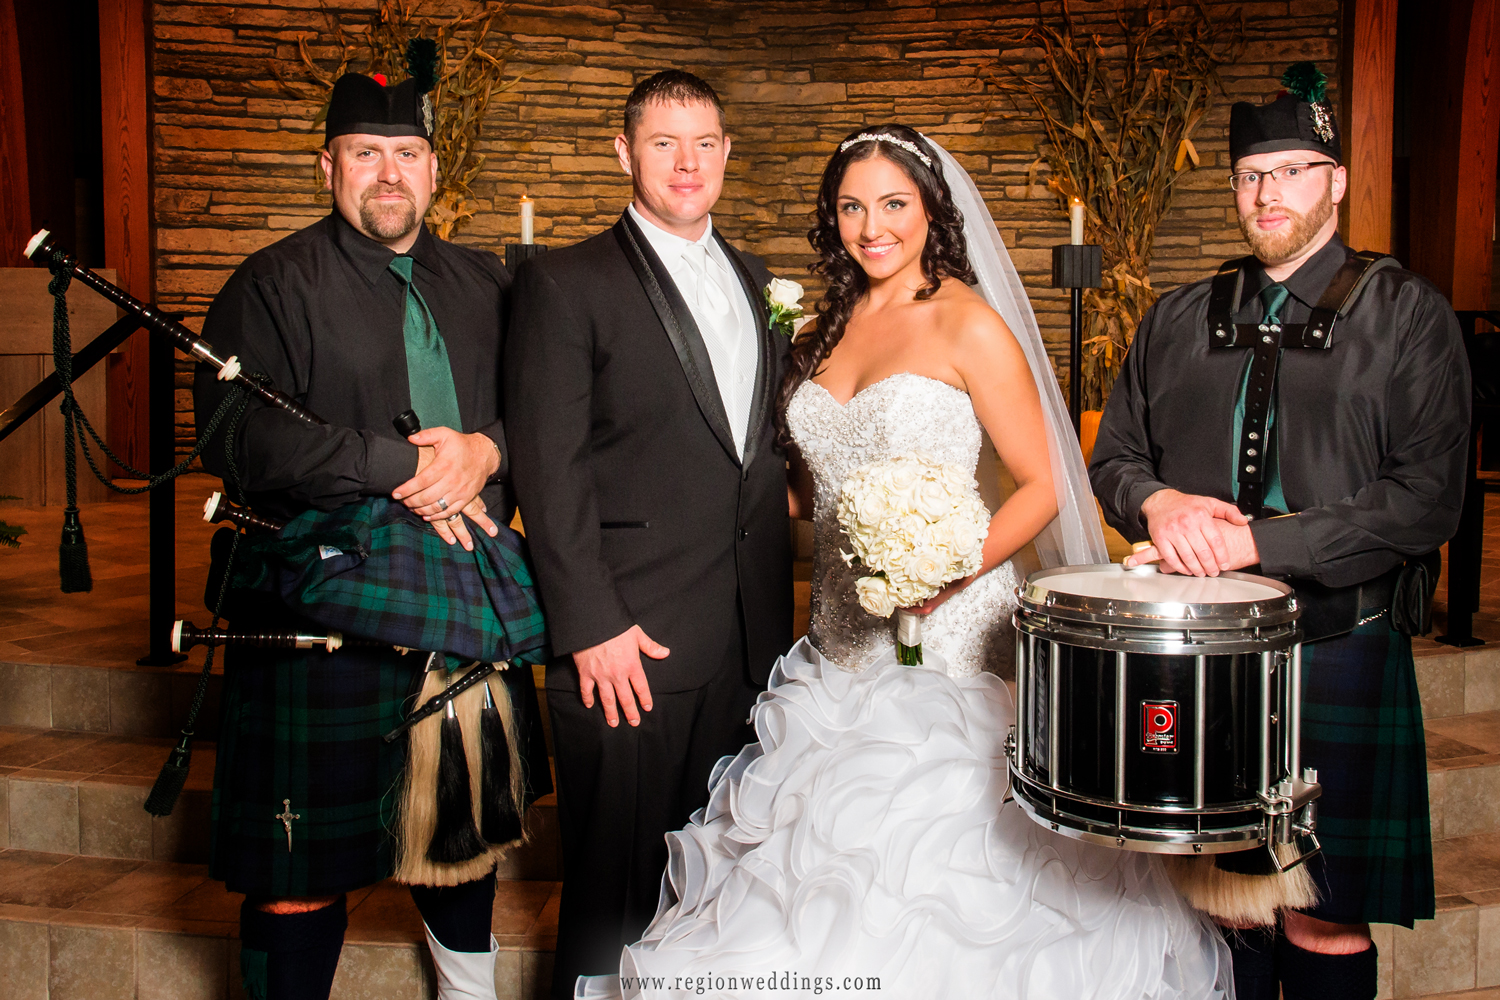 Bag pipe players pose with the bride and groom after their wedding ceremony at Our Lady of Grace Church.